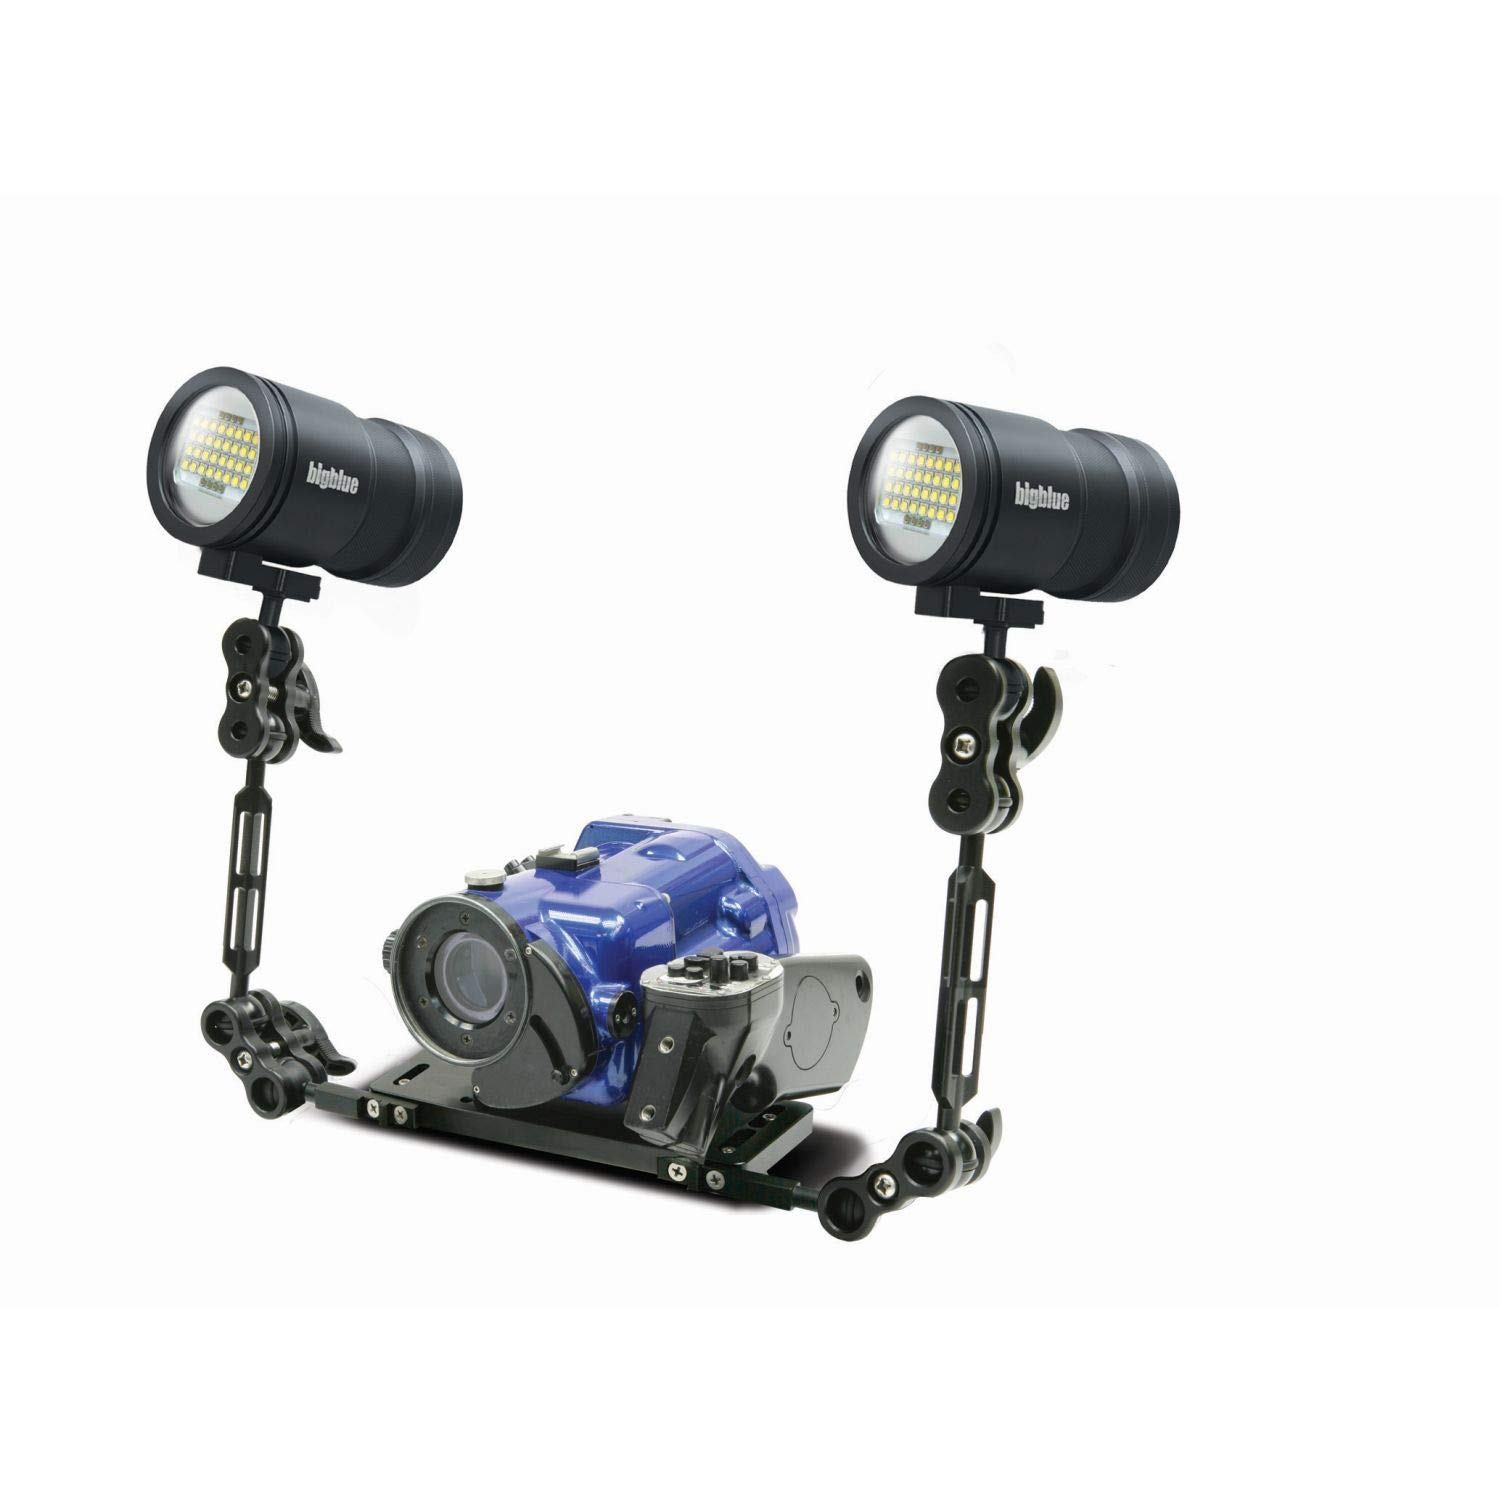 Bigblue VL15000P-TriColor - 15,000 Lumen Professional Video Light with 3 Color Modes by Bigblue (Image #4)